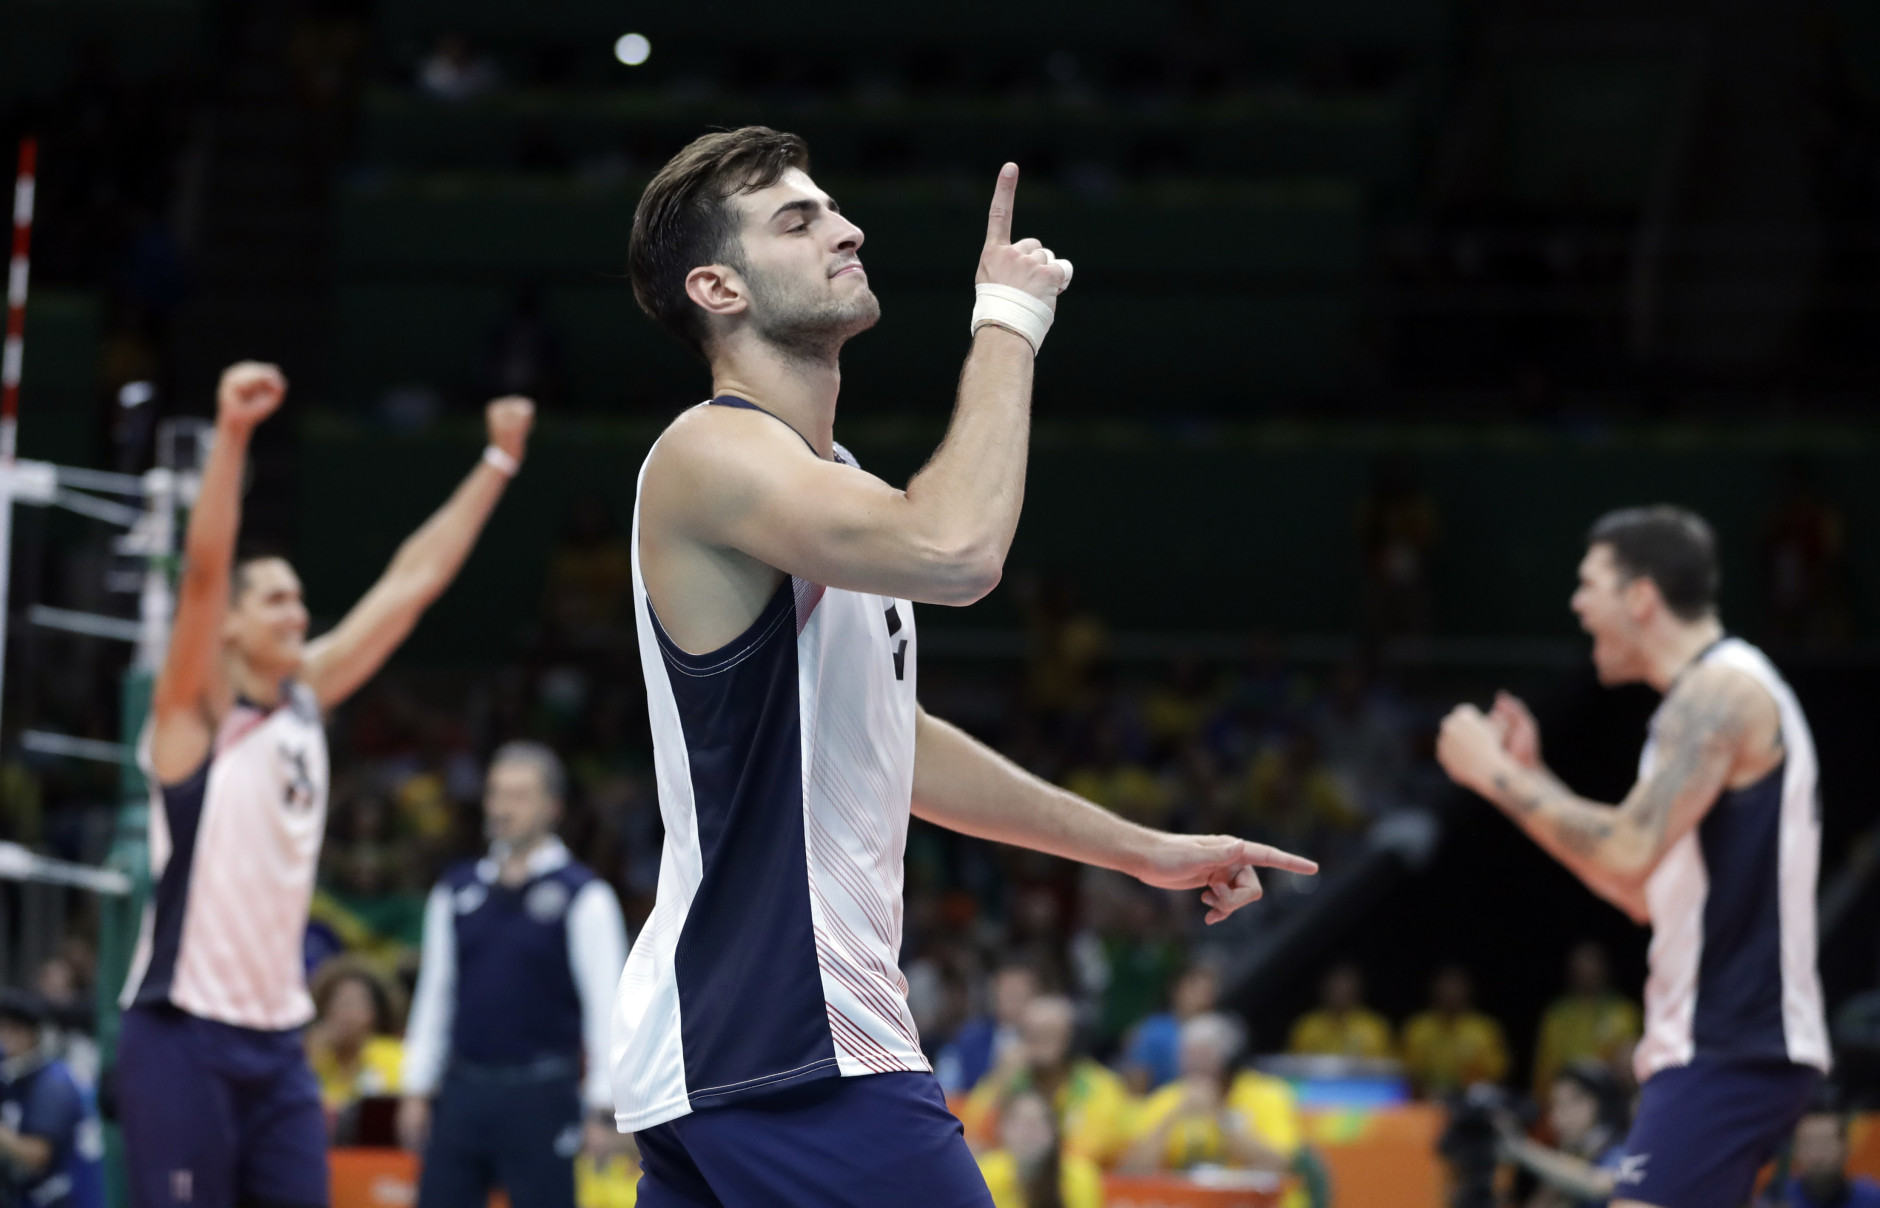 United States' Aaron Russell, center, celebrates after defeating Brazil during a men's preliminary volleyball match at the 2016 Summer Olympics in Rio de Janeiro, Brazil, Friday, Aug. 12, 2016. (AP Photo/Jeff Roberson)